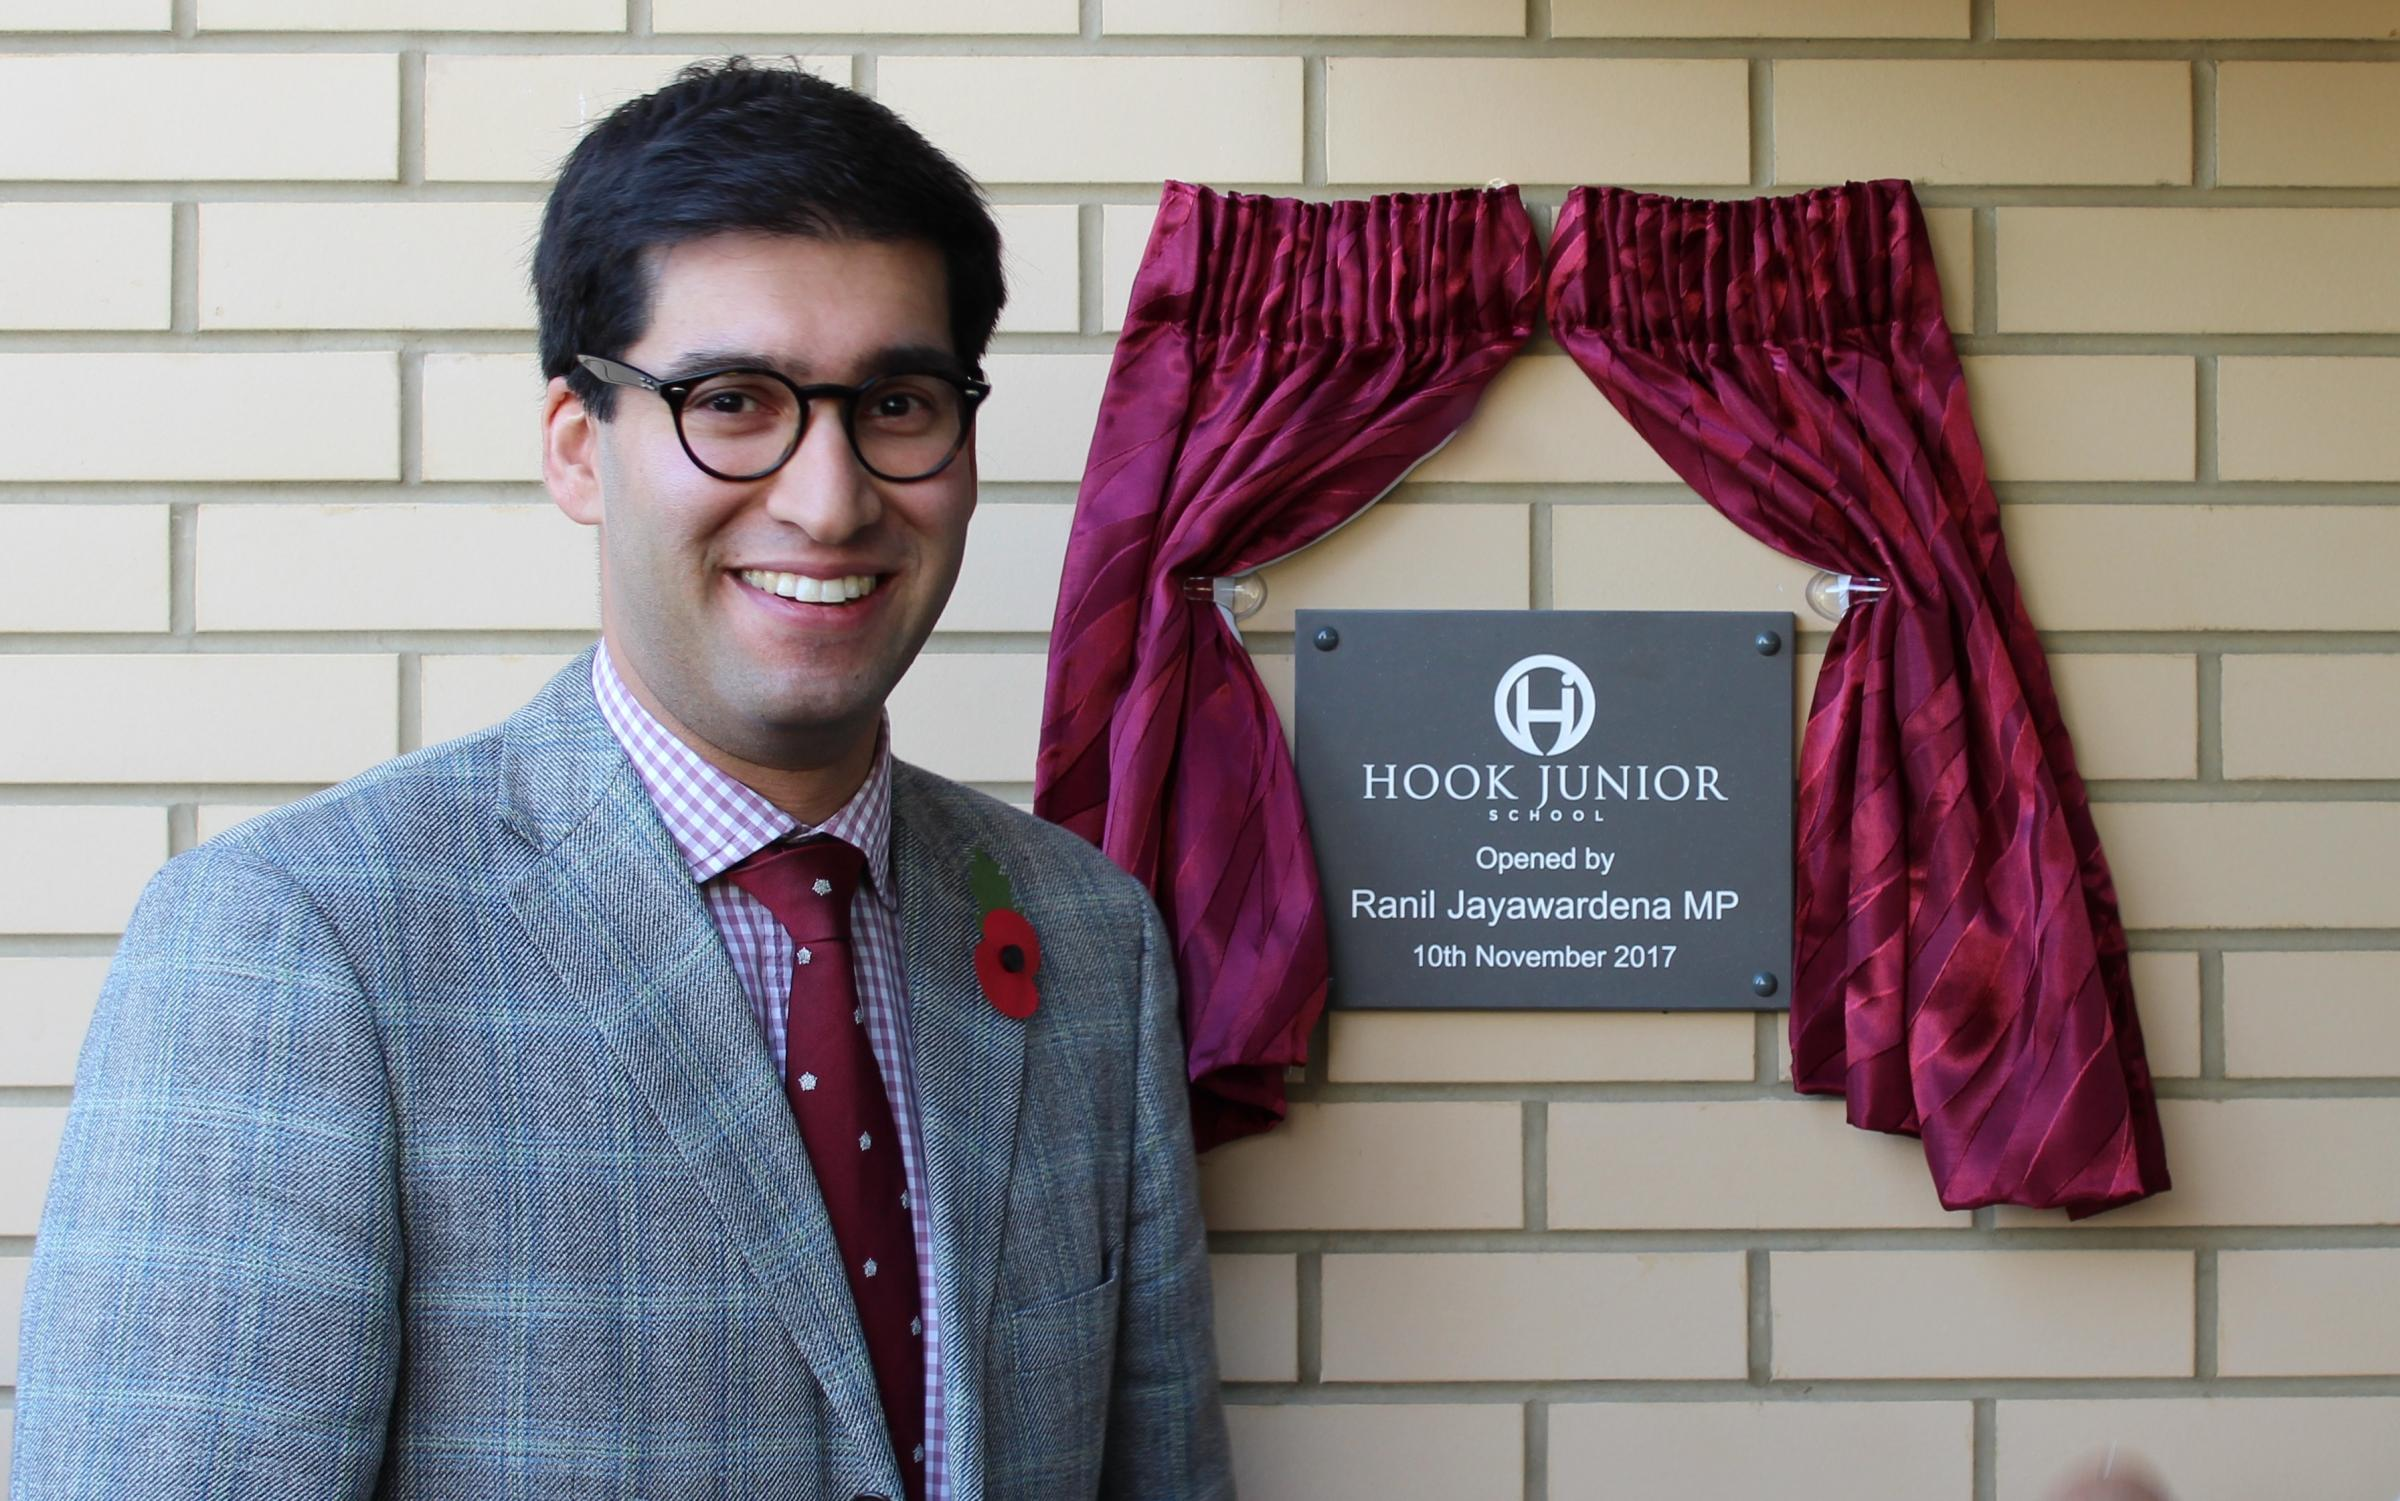 The new building was opened by Ranil Jayawadena, MP for North Hampshire